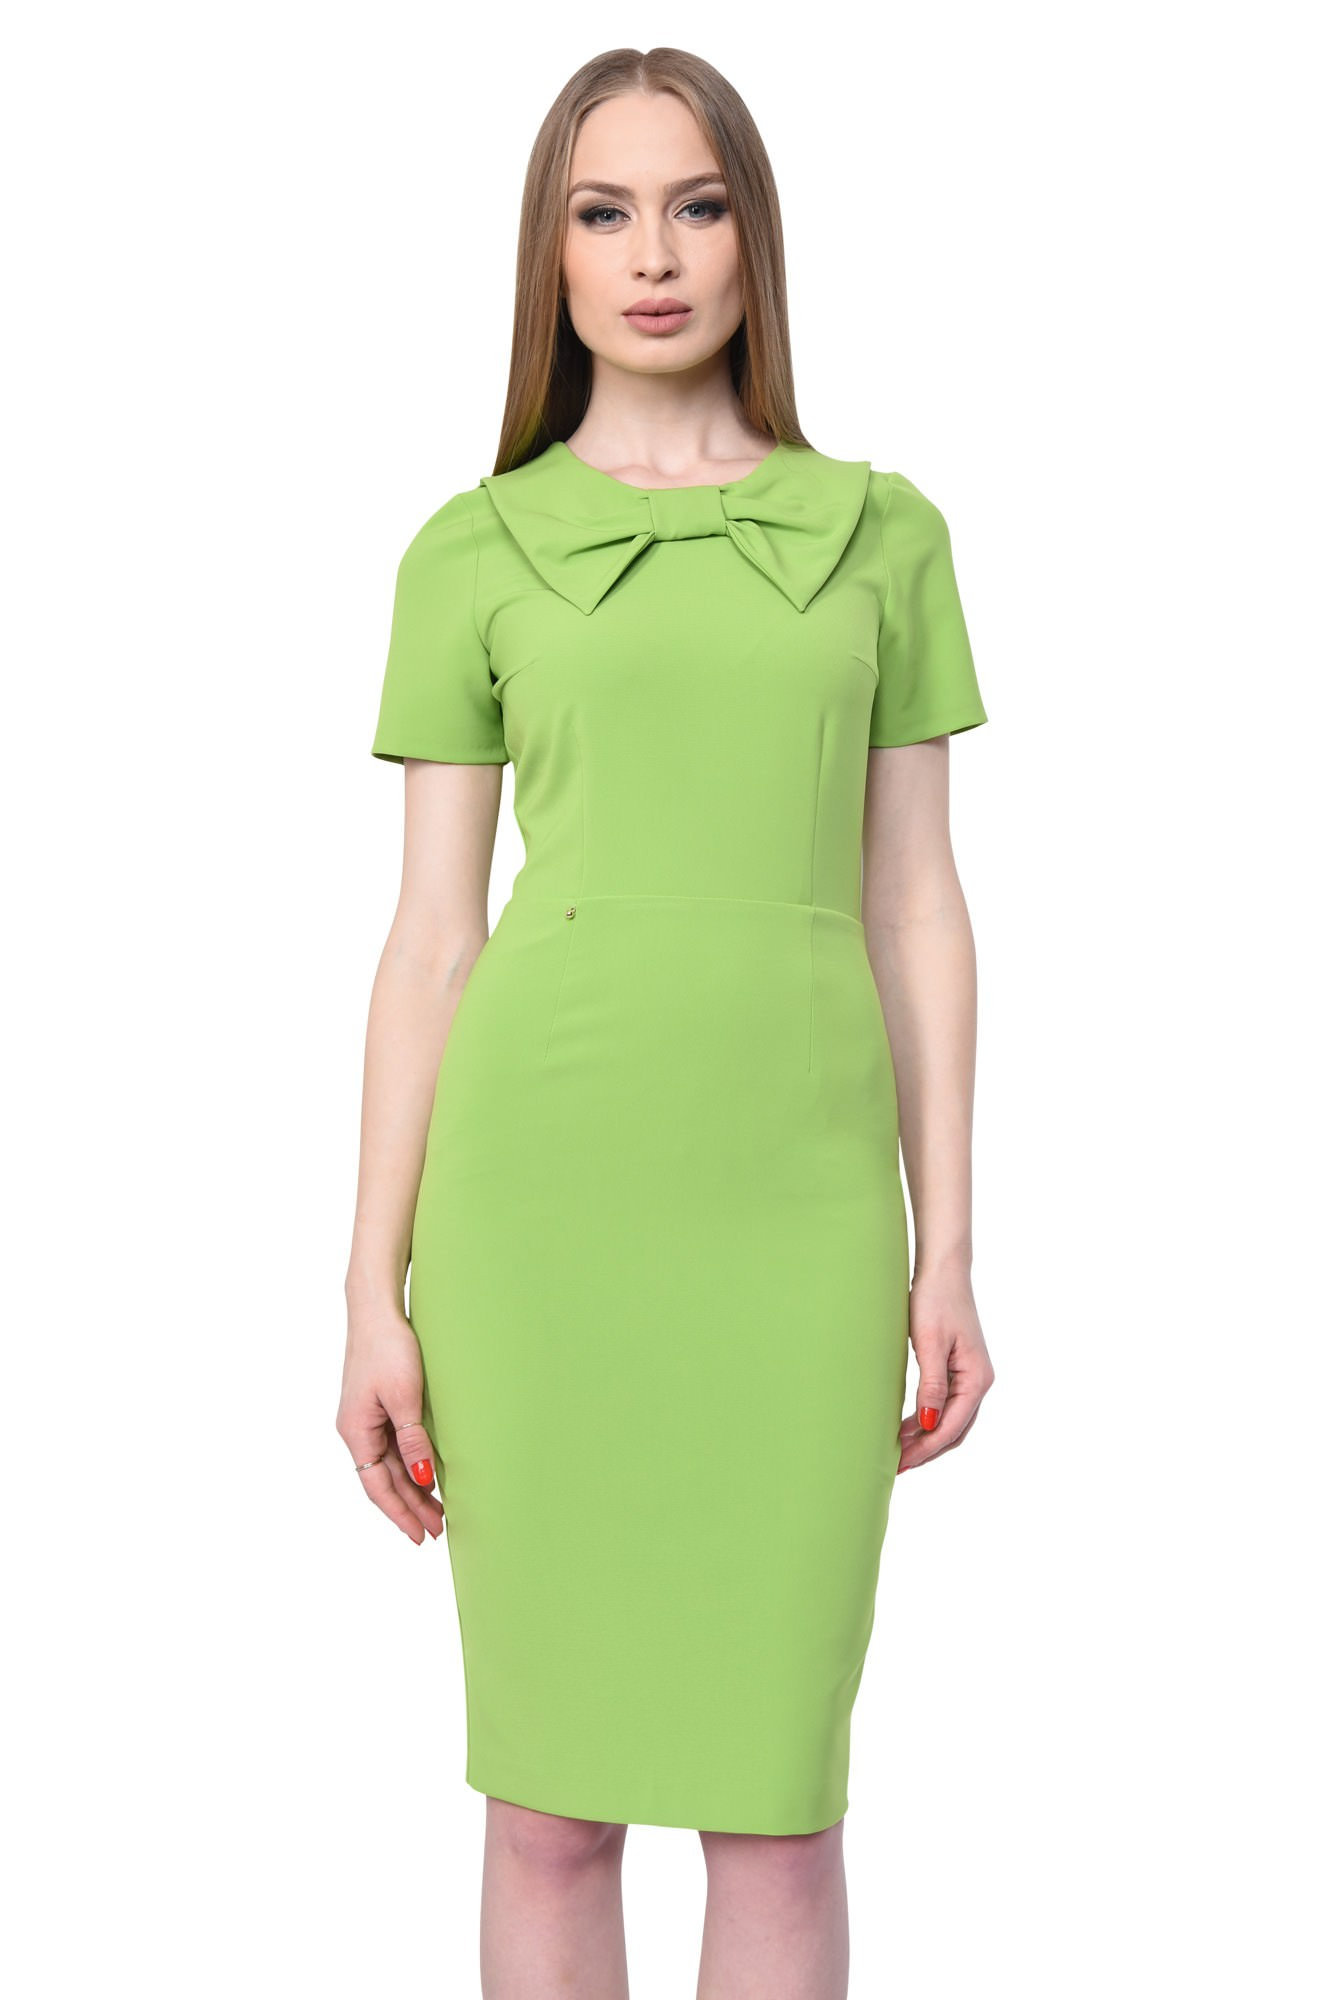 ROCHIE OFFICE CONICA R 265-VERDE